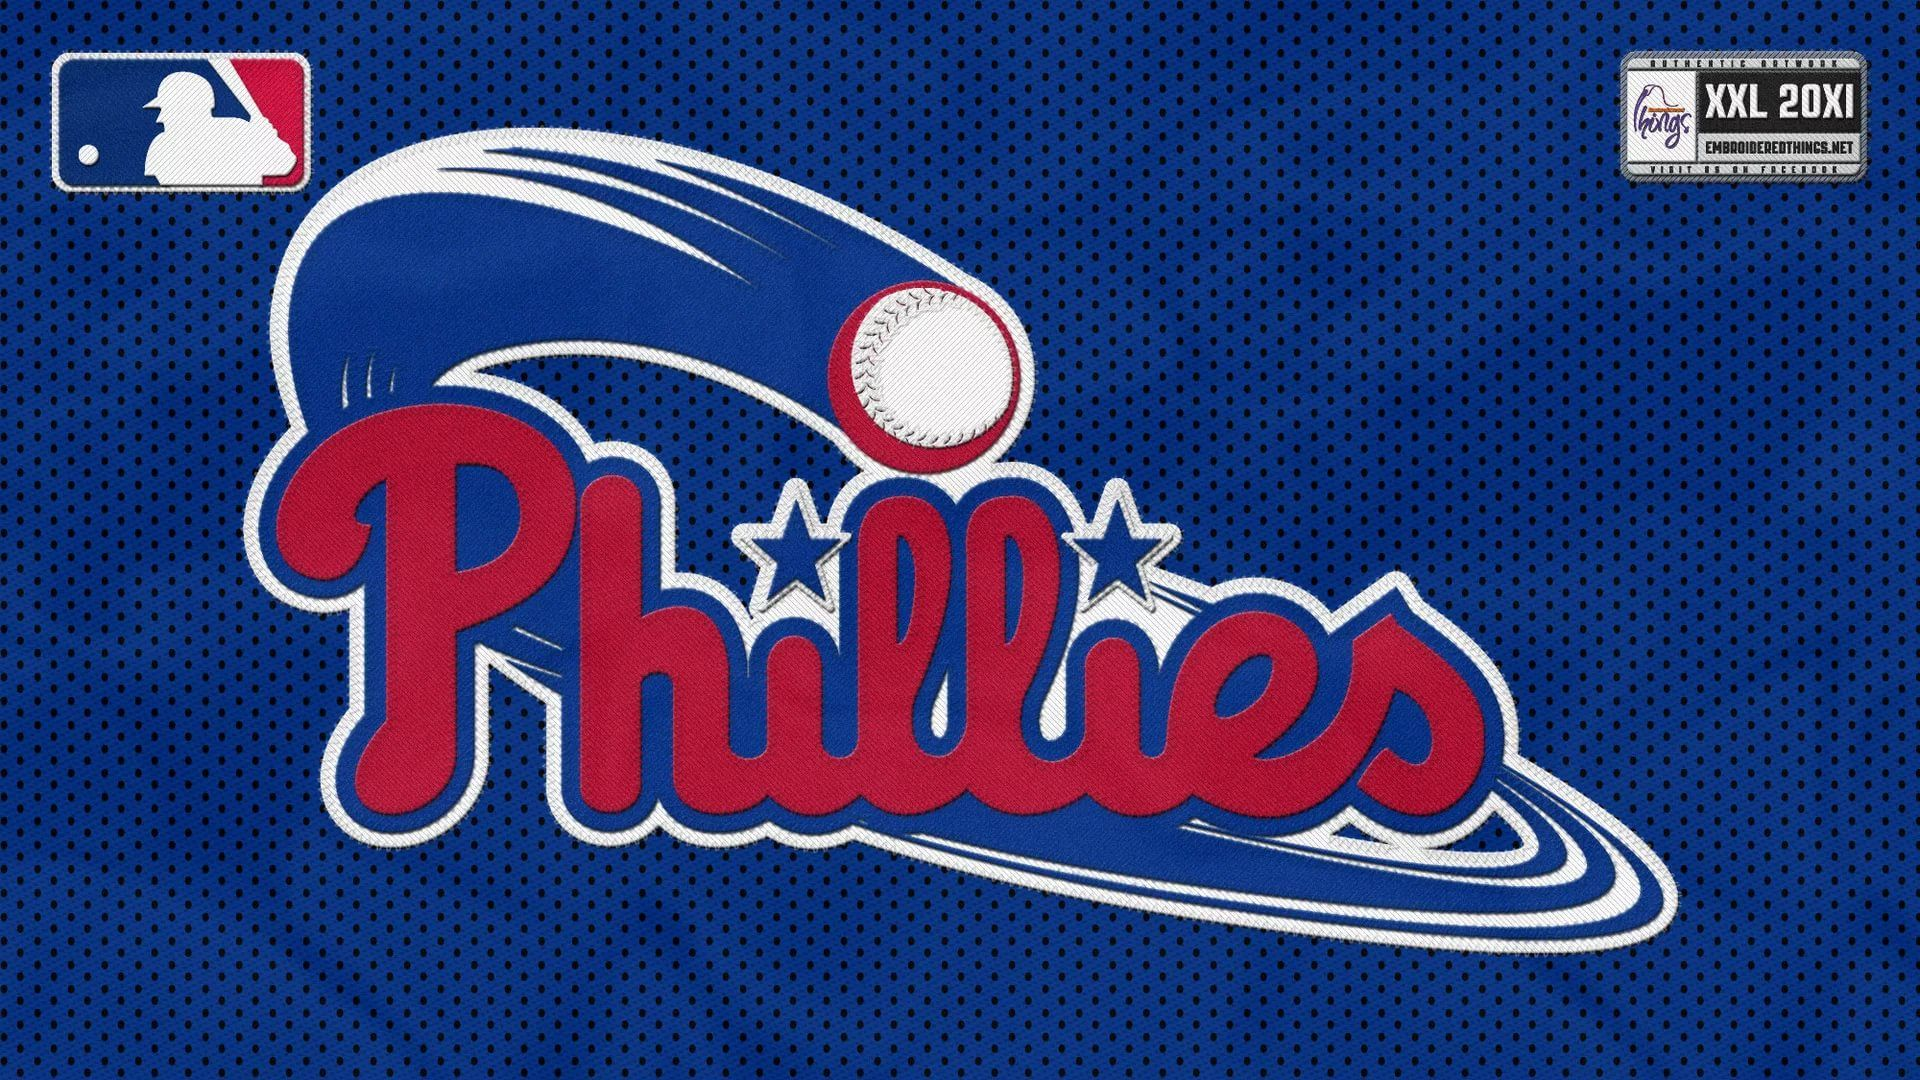 Phillies Logo wallpaper and themes